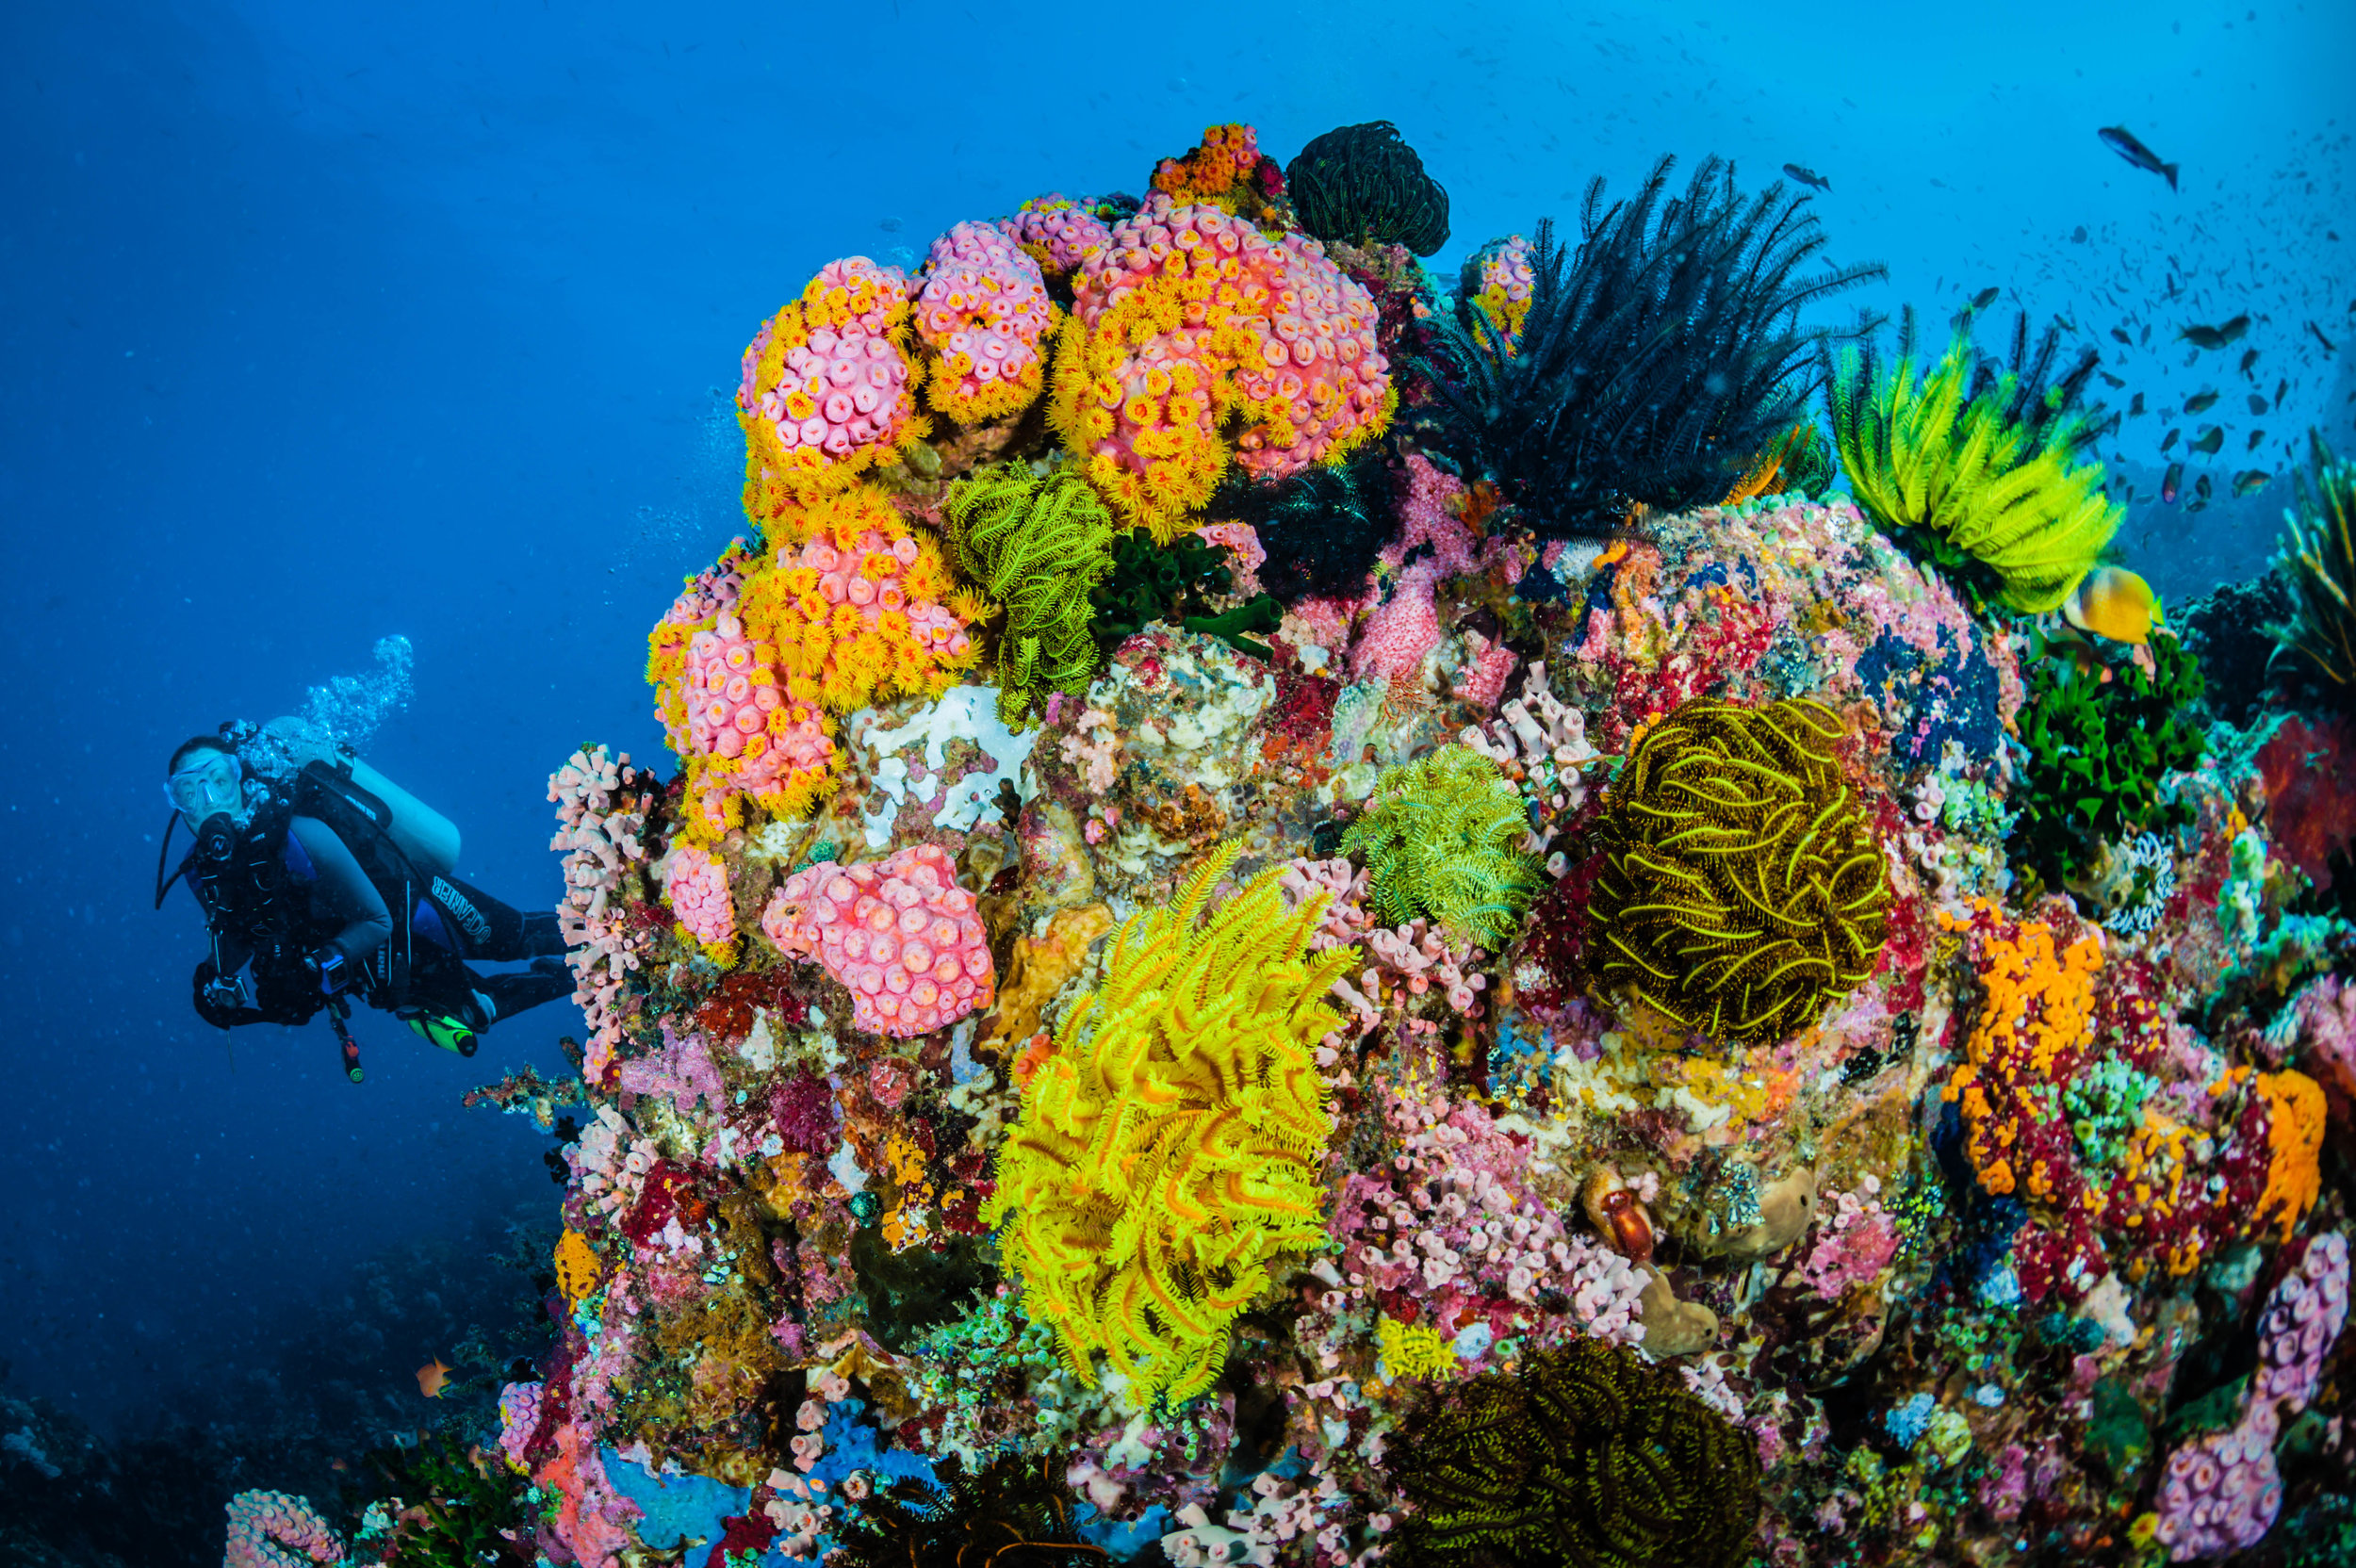 SOMBRERO ISLAND REEF PHILIPPINES CREDIT: JETT BRITNELL / coral reef image bank